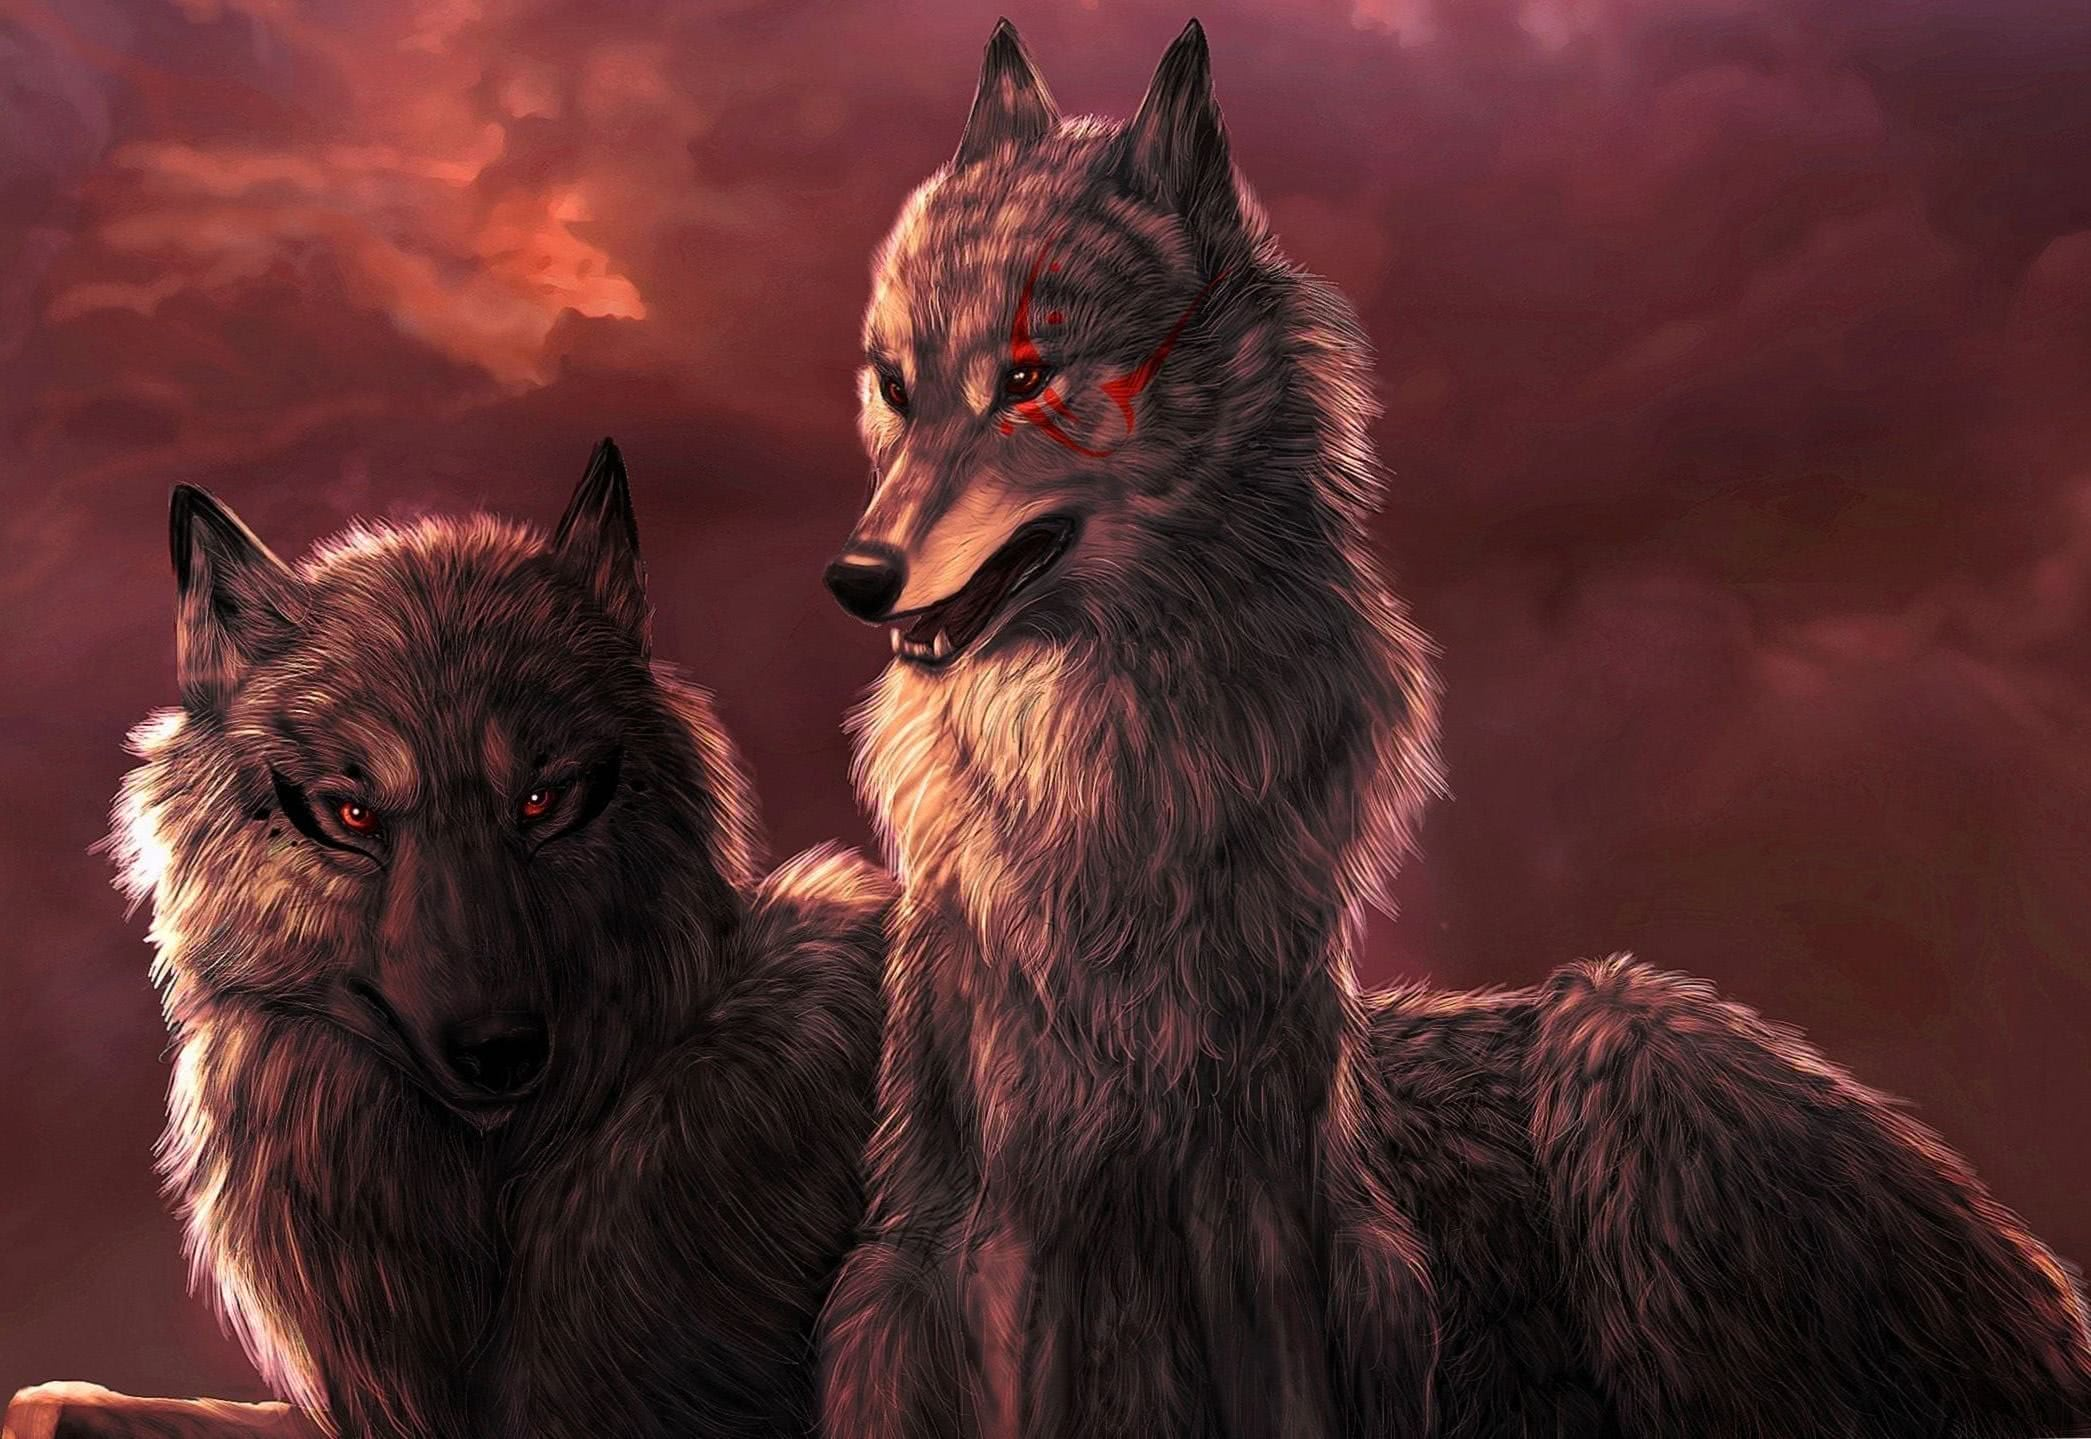 Black Wolf With Red Eyes HD Wallpaper